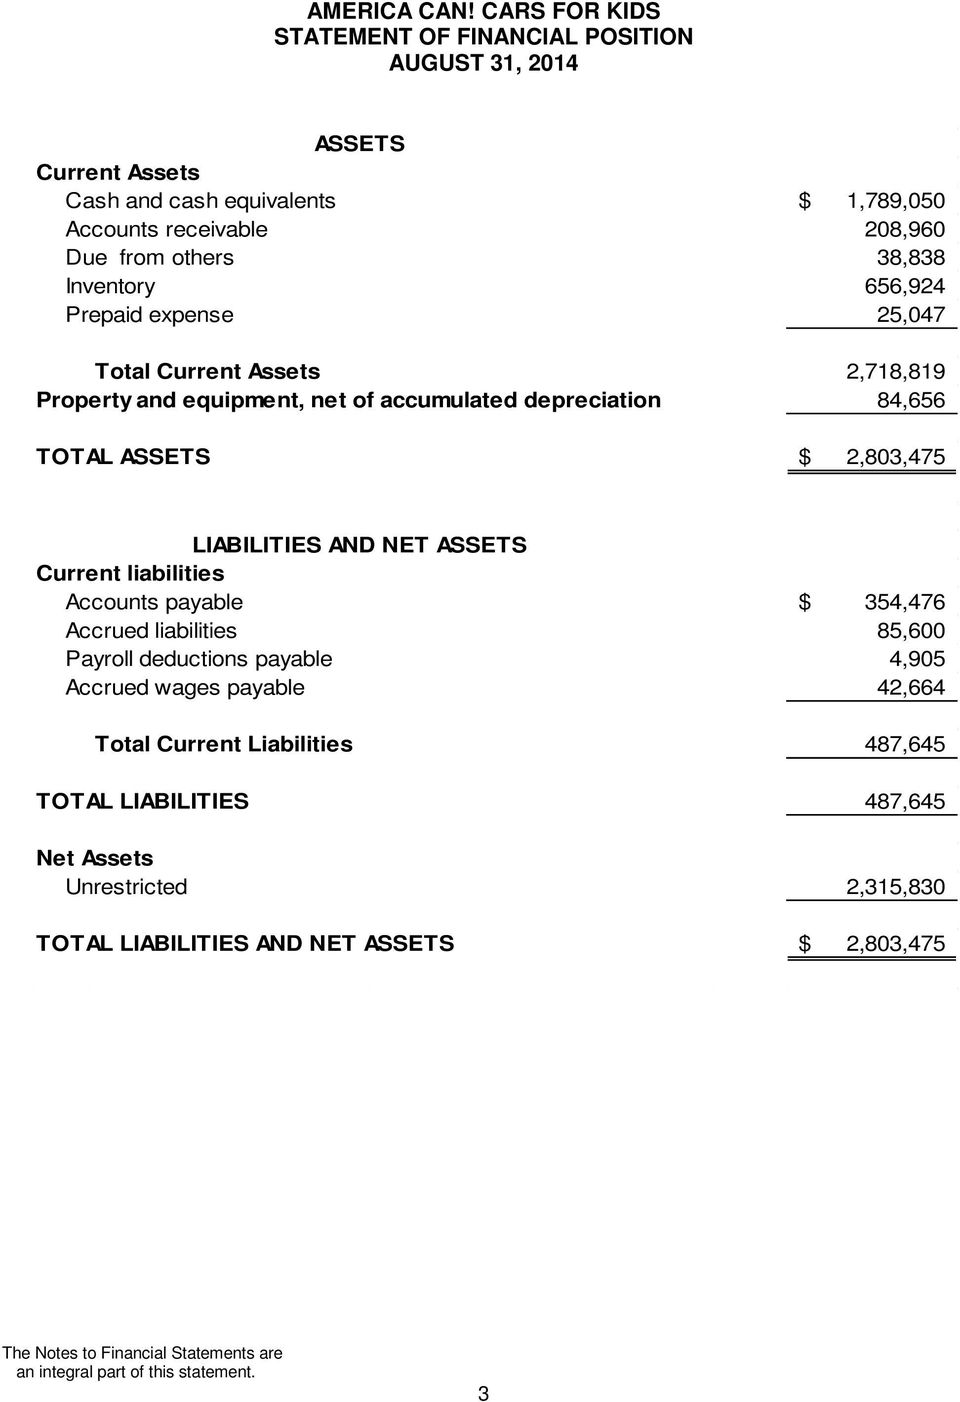 ASSETS Current liabilities Accounts payable $ 354,476 Accrued liabilities 85,600 Payroll deductions payable 4,905 Accrued wages payable 42,664 Total Current Liabilities